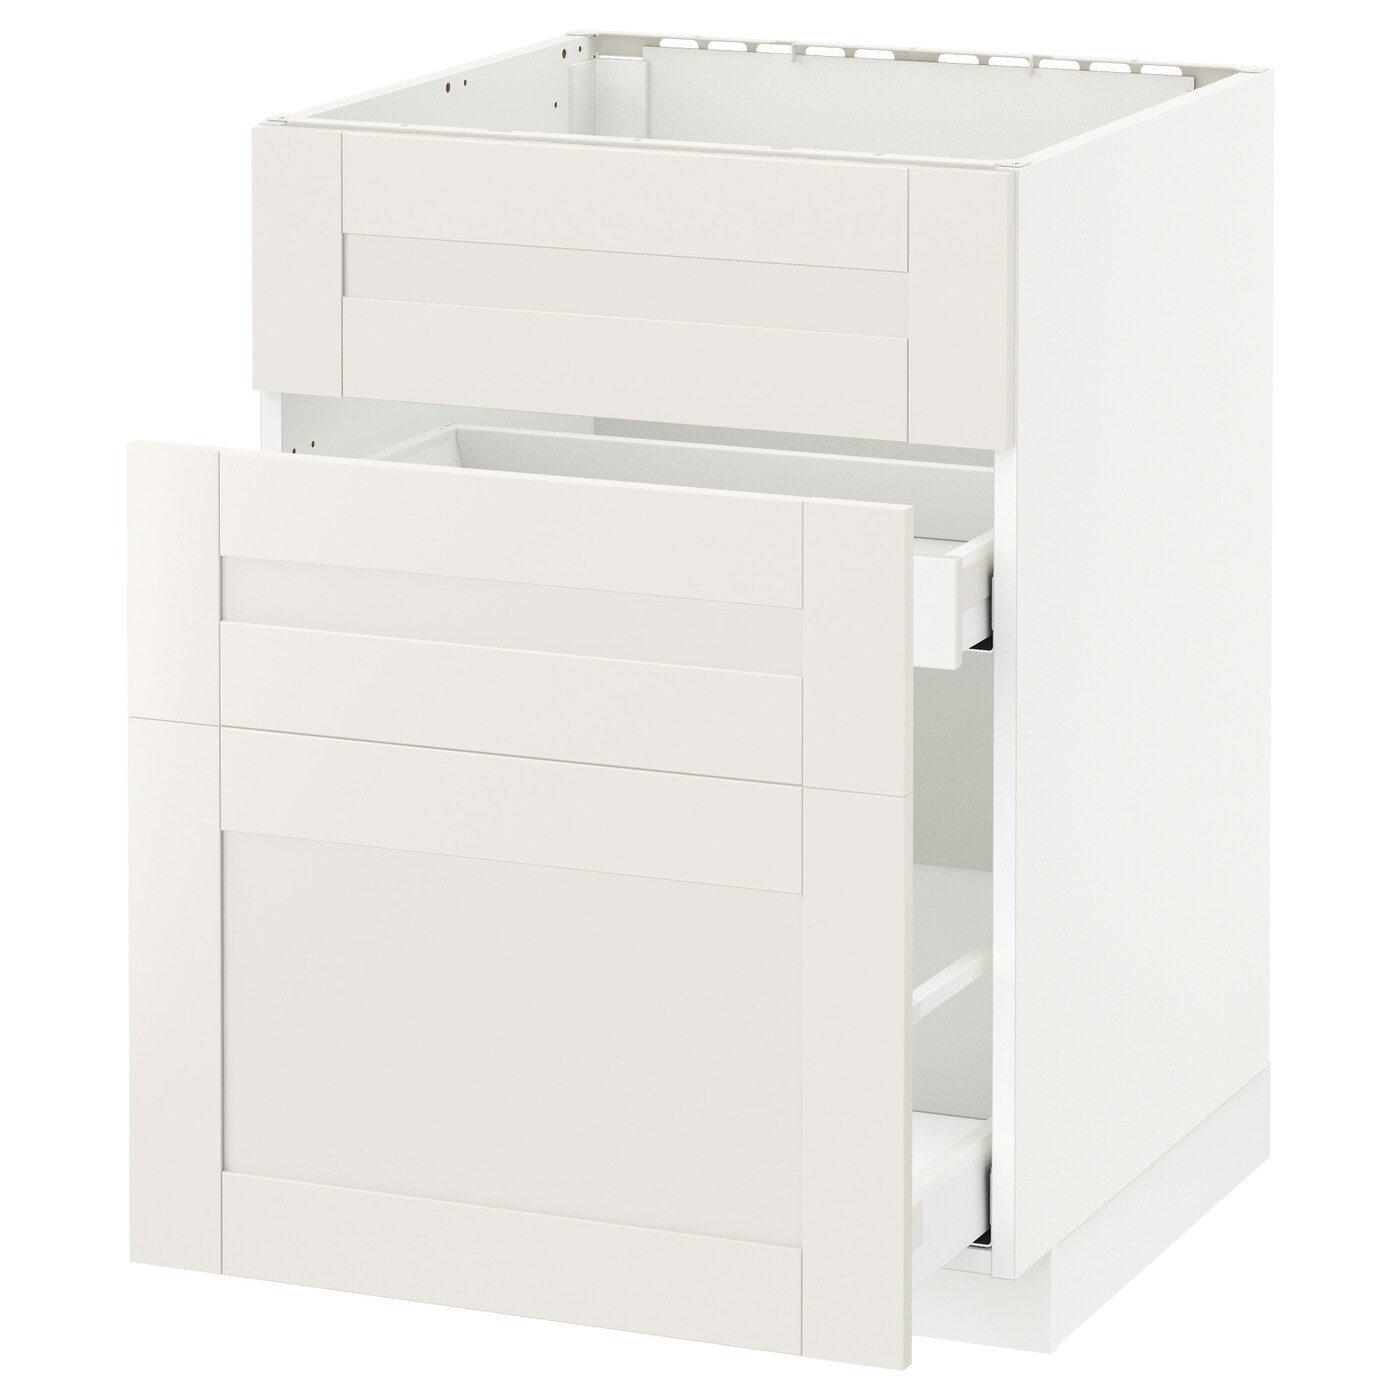 IKEA METOD/MAXIMERA base cab f sink+3 fronts/2 drawers Smooth-running drawer with drawer stop.